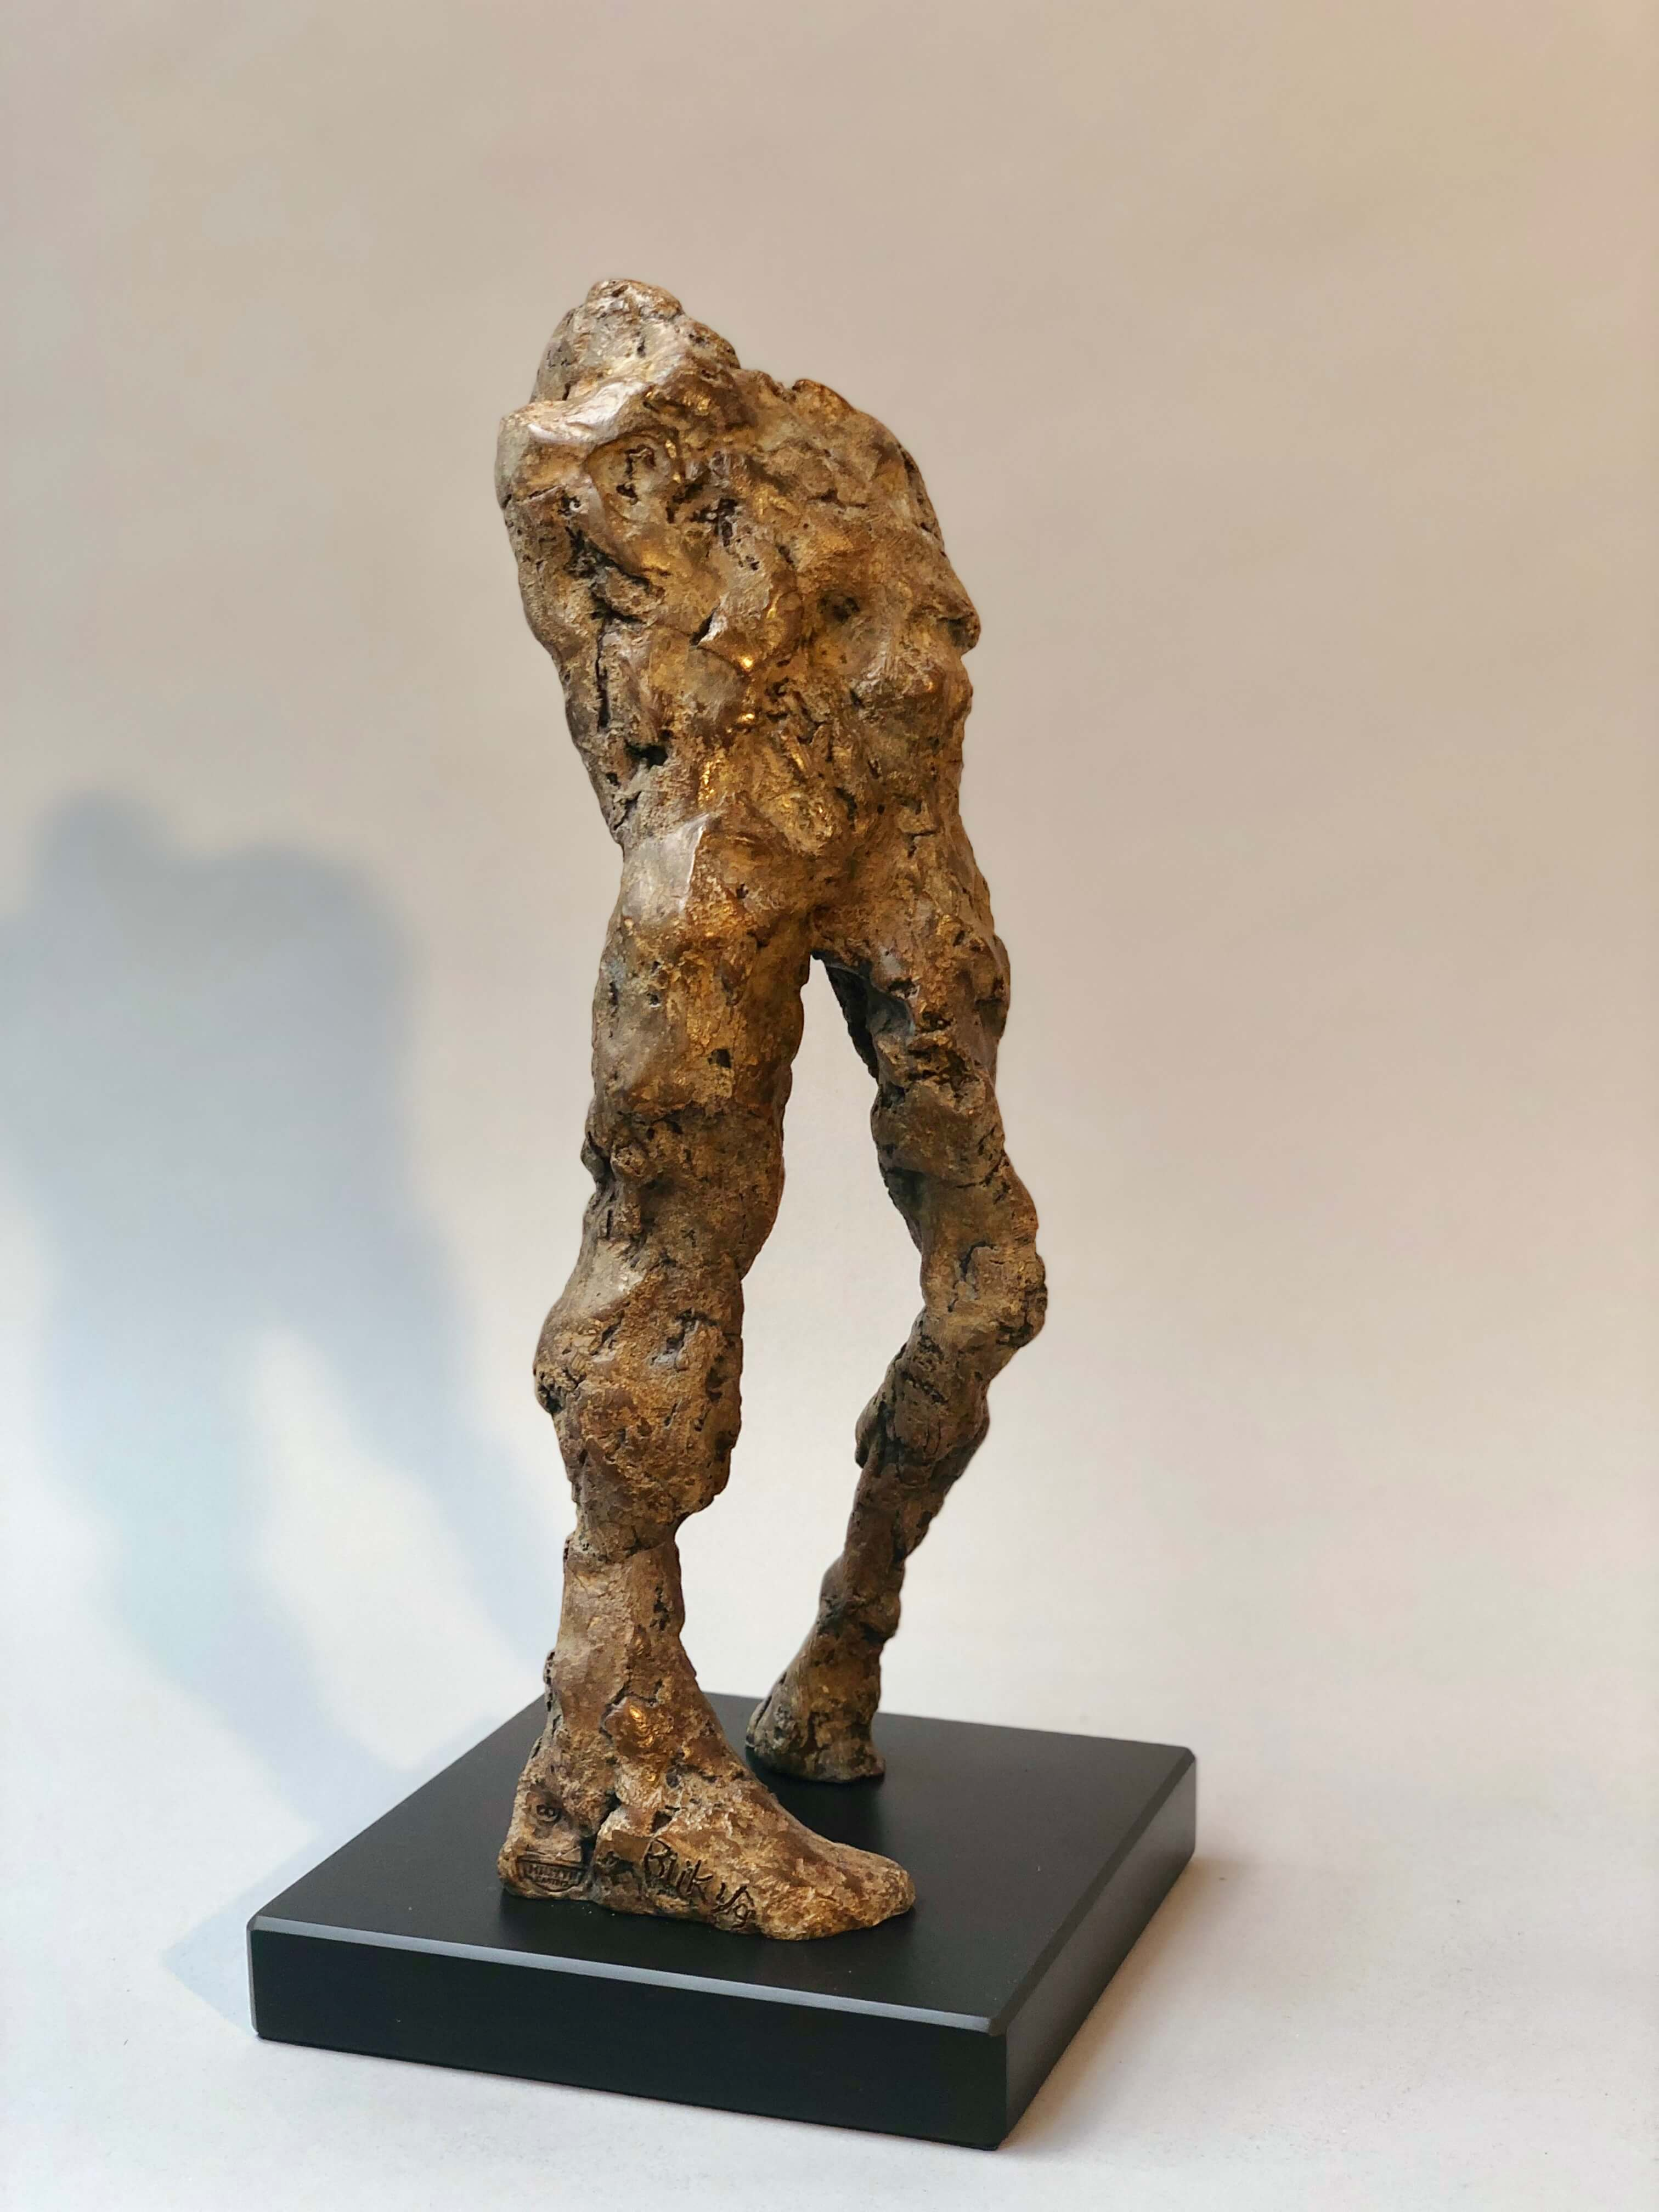 Maurice Blik at Muse. The Sculpture Company